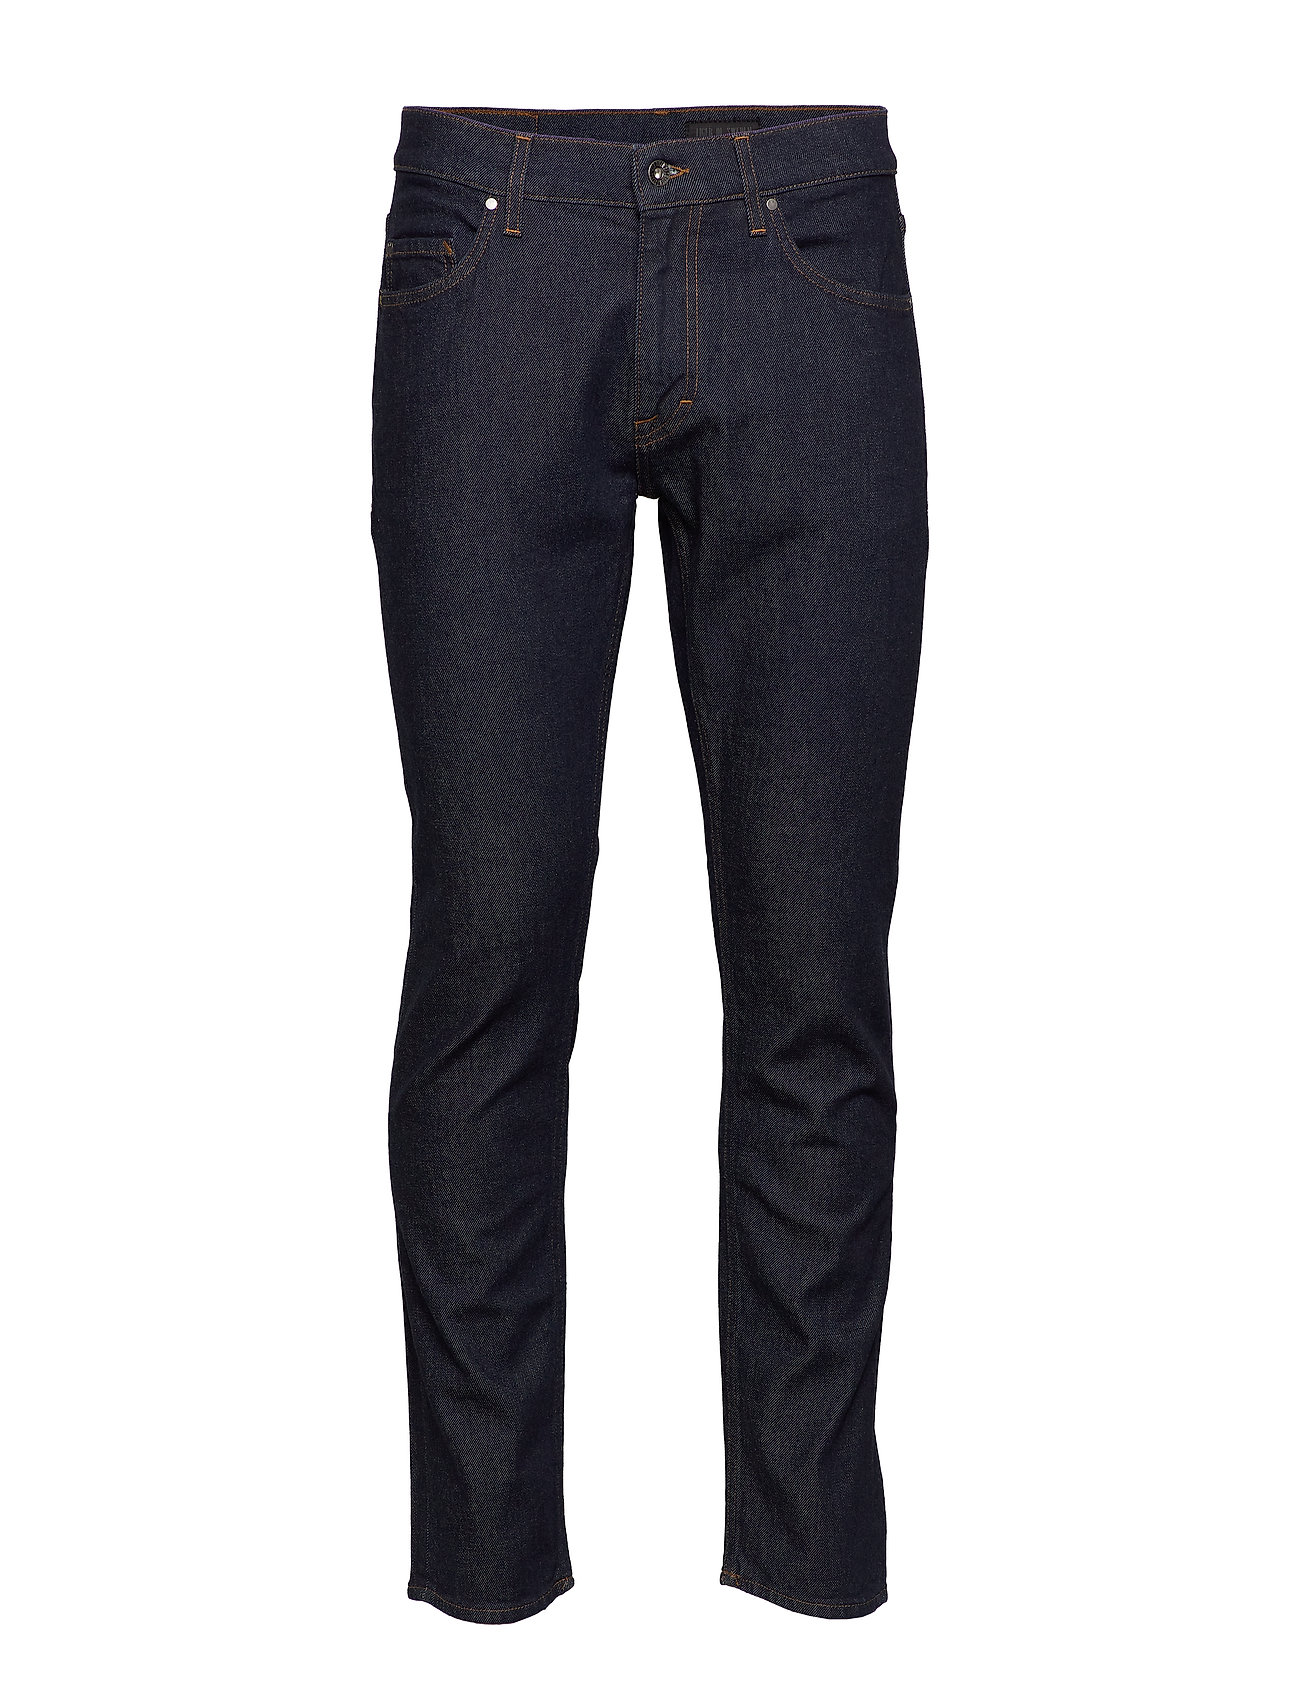 Tiger of Sweden Jeans PISTOLERO - MIDNIGHT BLUE